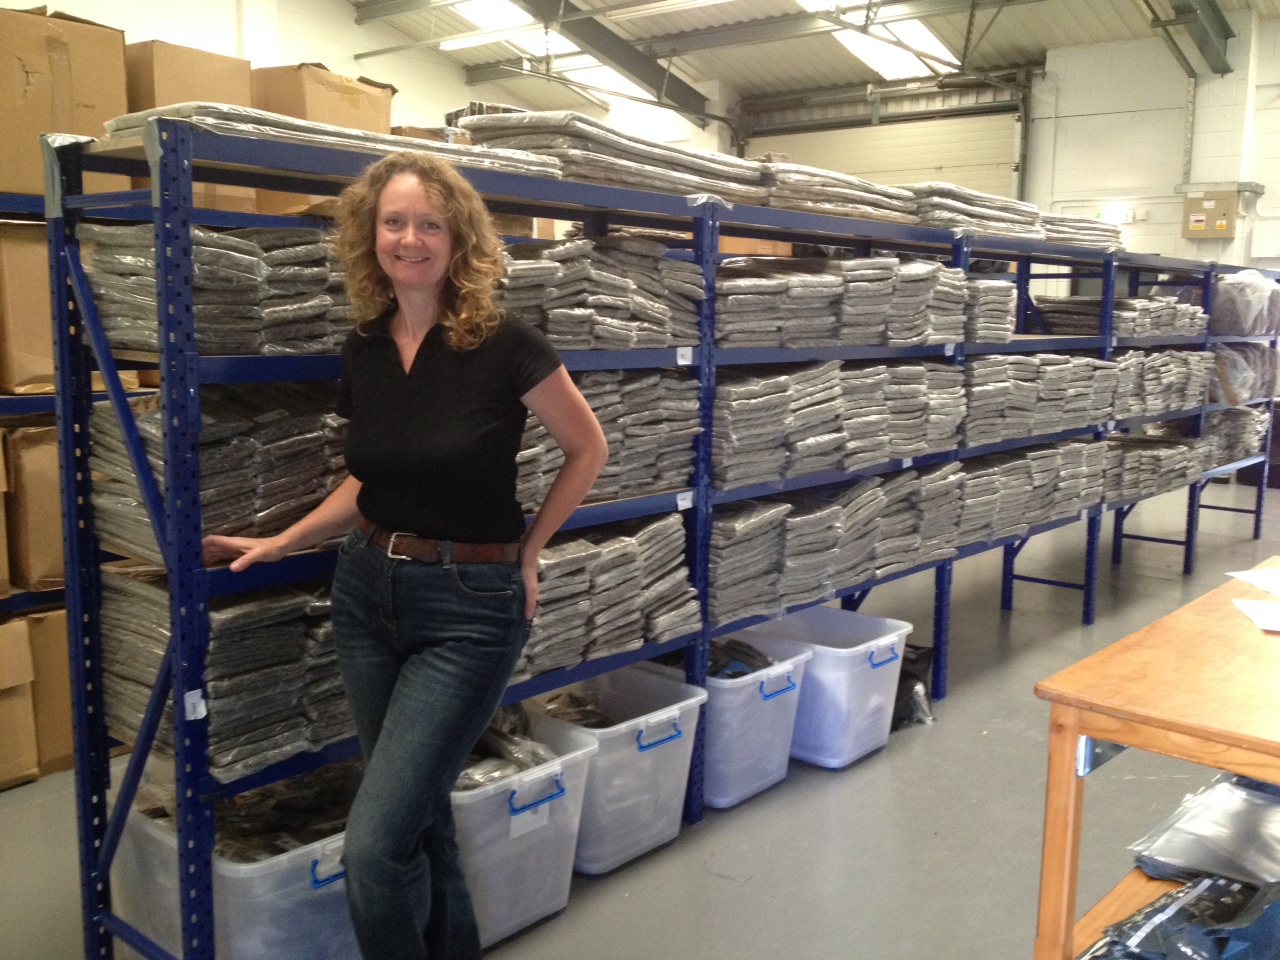 Sally owner of Chimney Sheep - standing by full shelves of Chimney Sheep